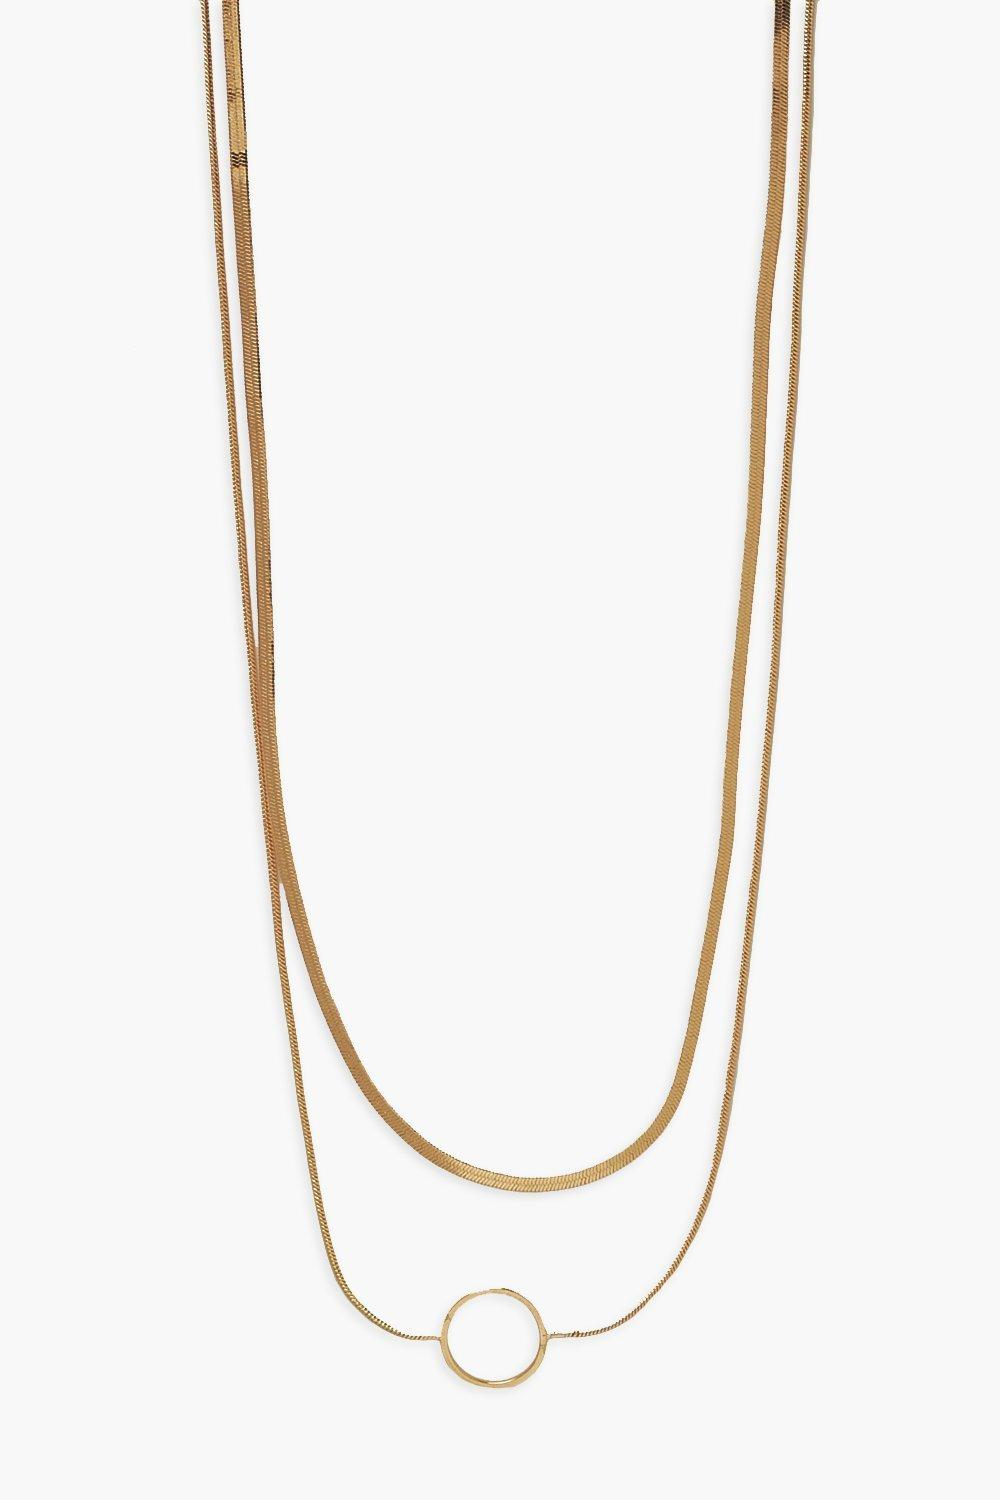 Boohoo Openwork Disc Double Layered Necklace, Gold